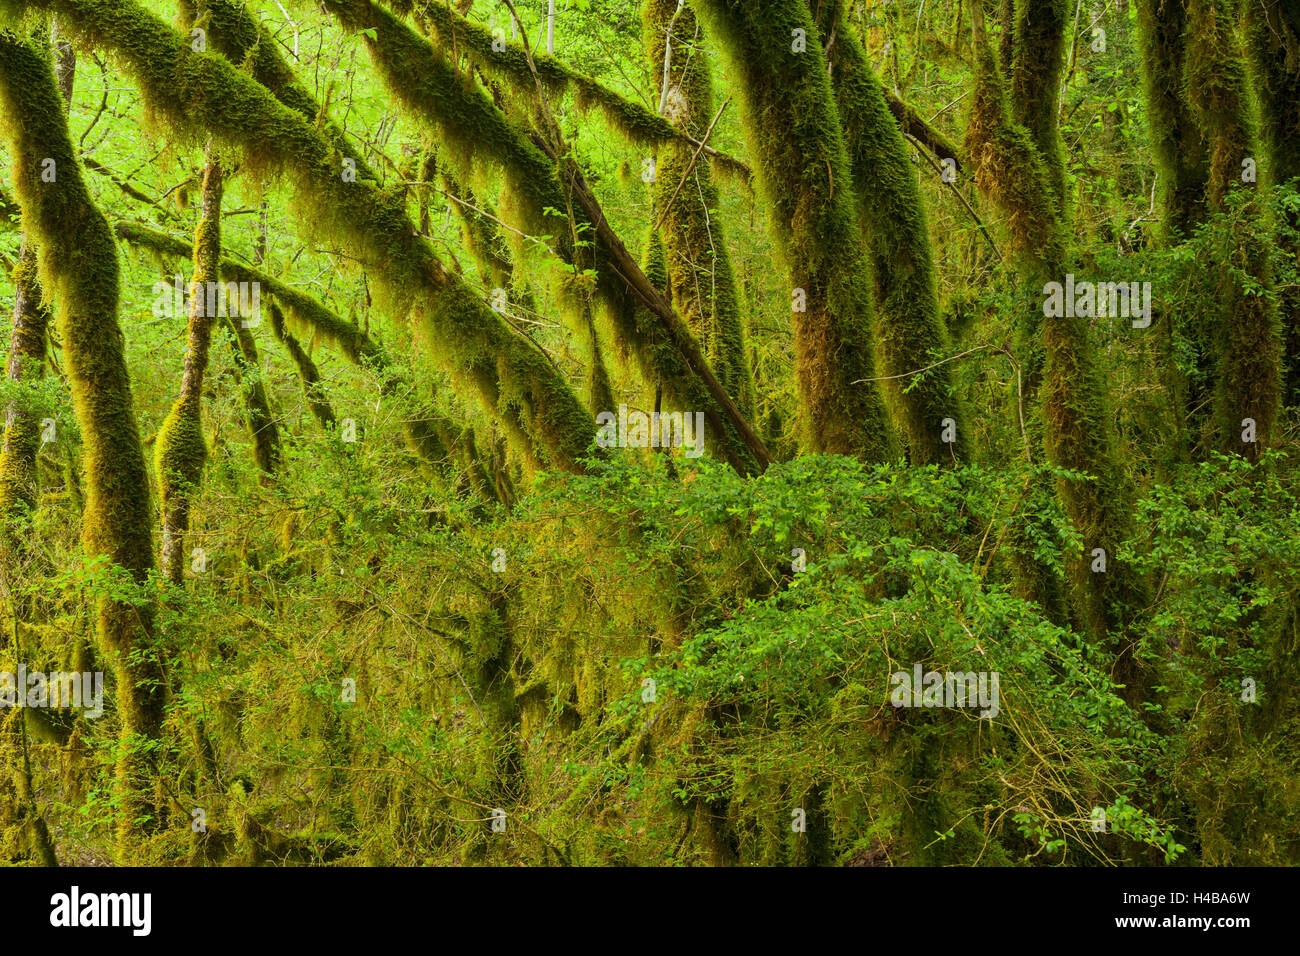 moss-overcast wood, Flumen valley, Saint-Claude, law, France - Stock Image